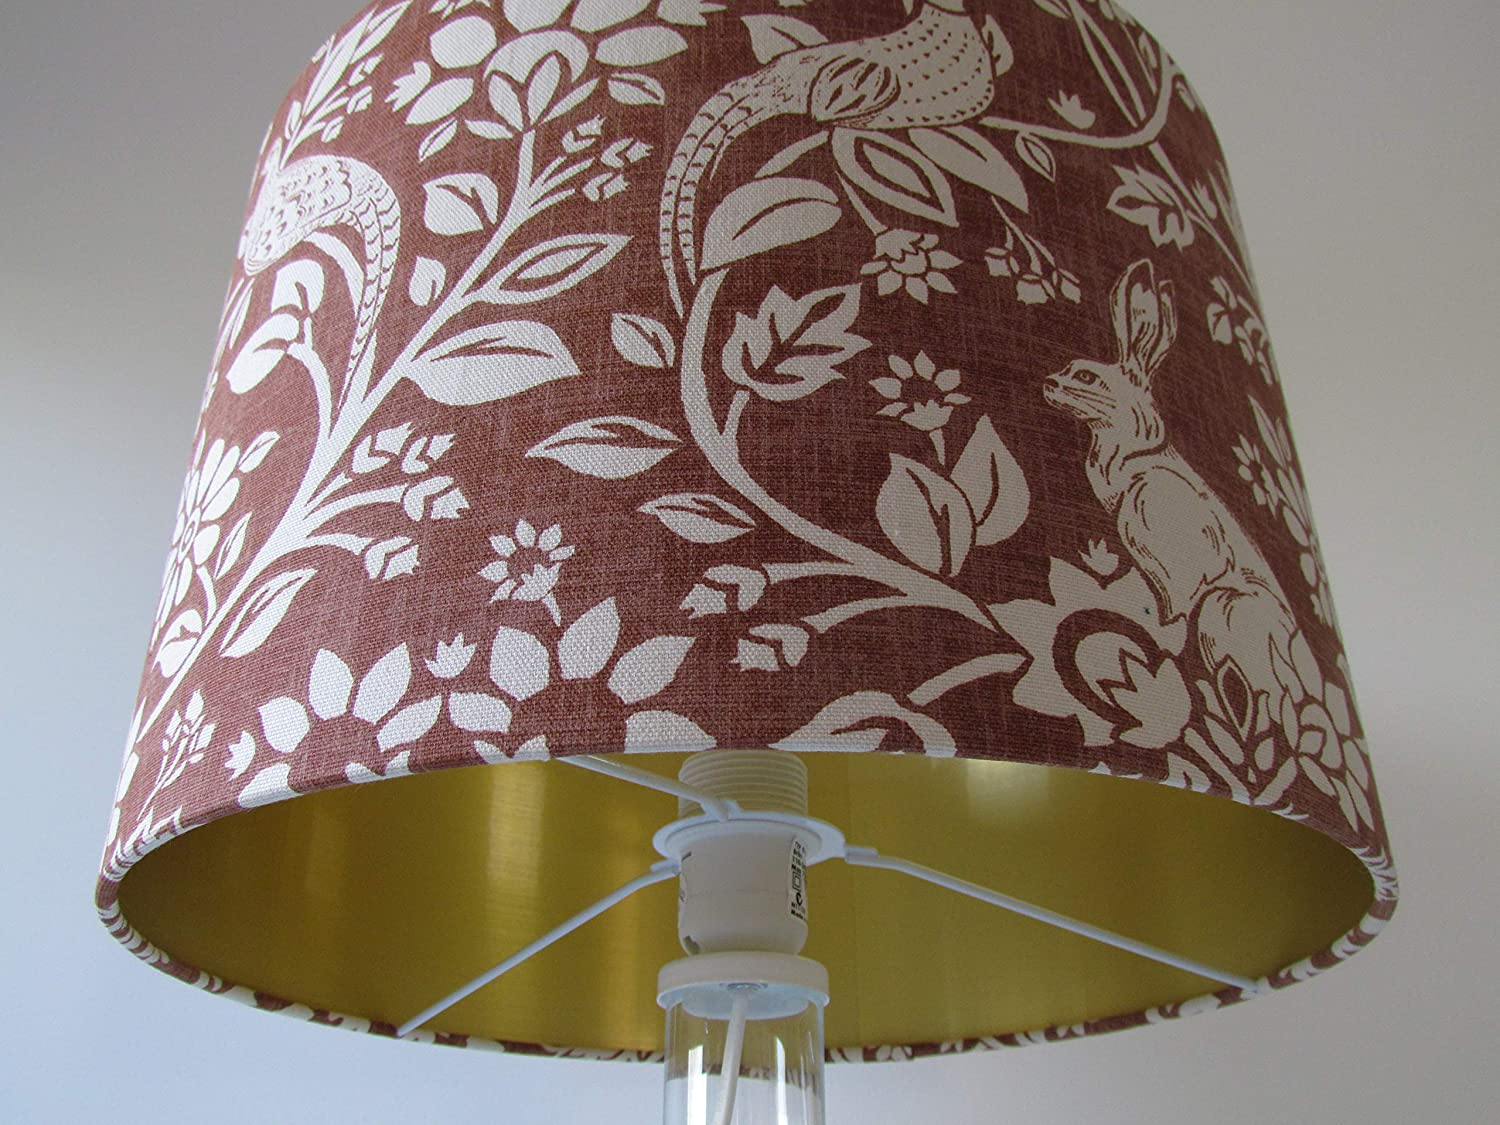 Handmade Copper Hare Pheasant Leaves Drum Lampshade Lightshade with Brushed Gold Metallic Lining